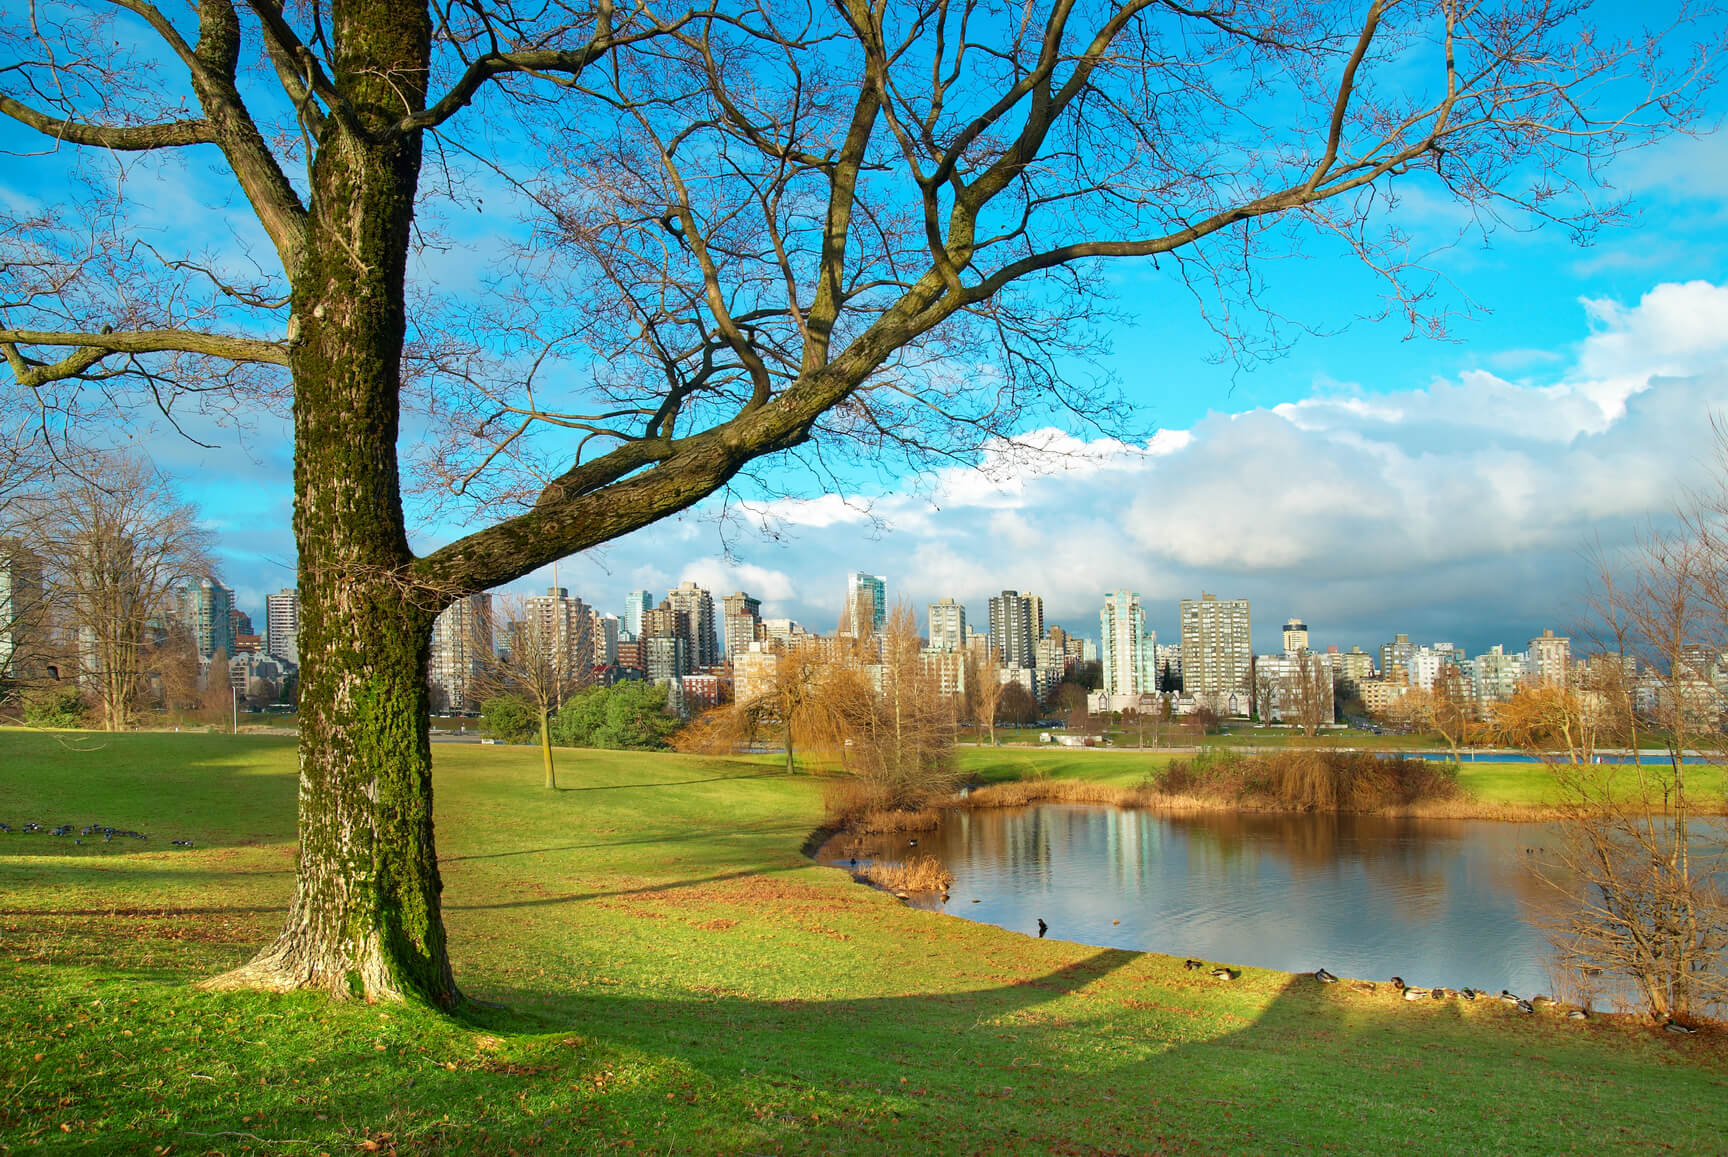 Non-stop from London, UK to Vancouver, Canada for only £336 roundtrip